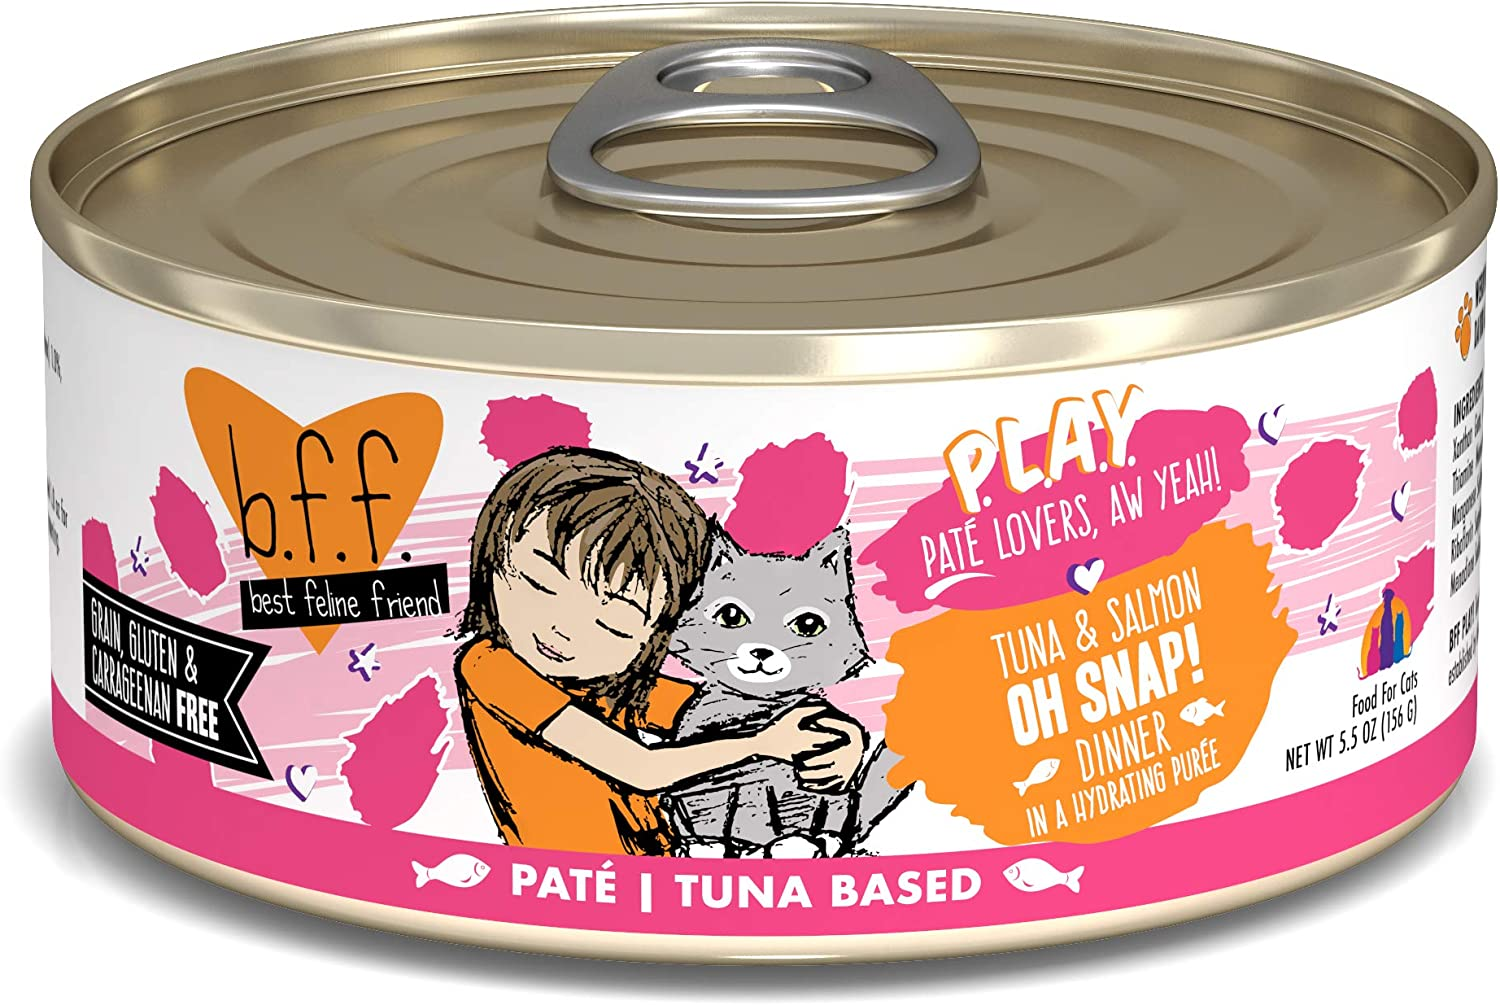 B.F.F. PLAY - Best Feline Friend Paté Lovers, Aw Yeah!, Tuna & Salmon Oh Snap! with Tuna & Salmon, 5.5oz Can (Pack of 8)